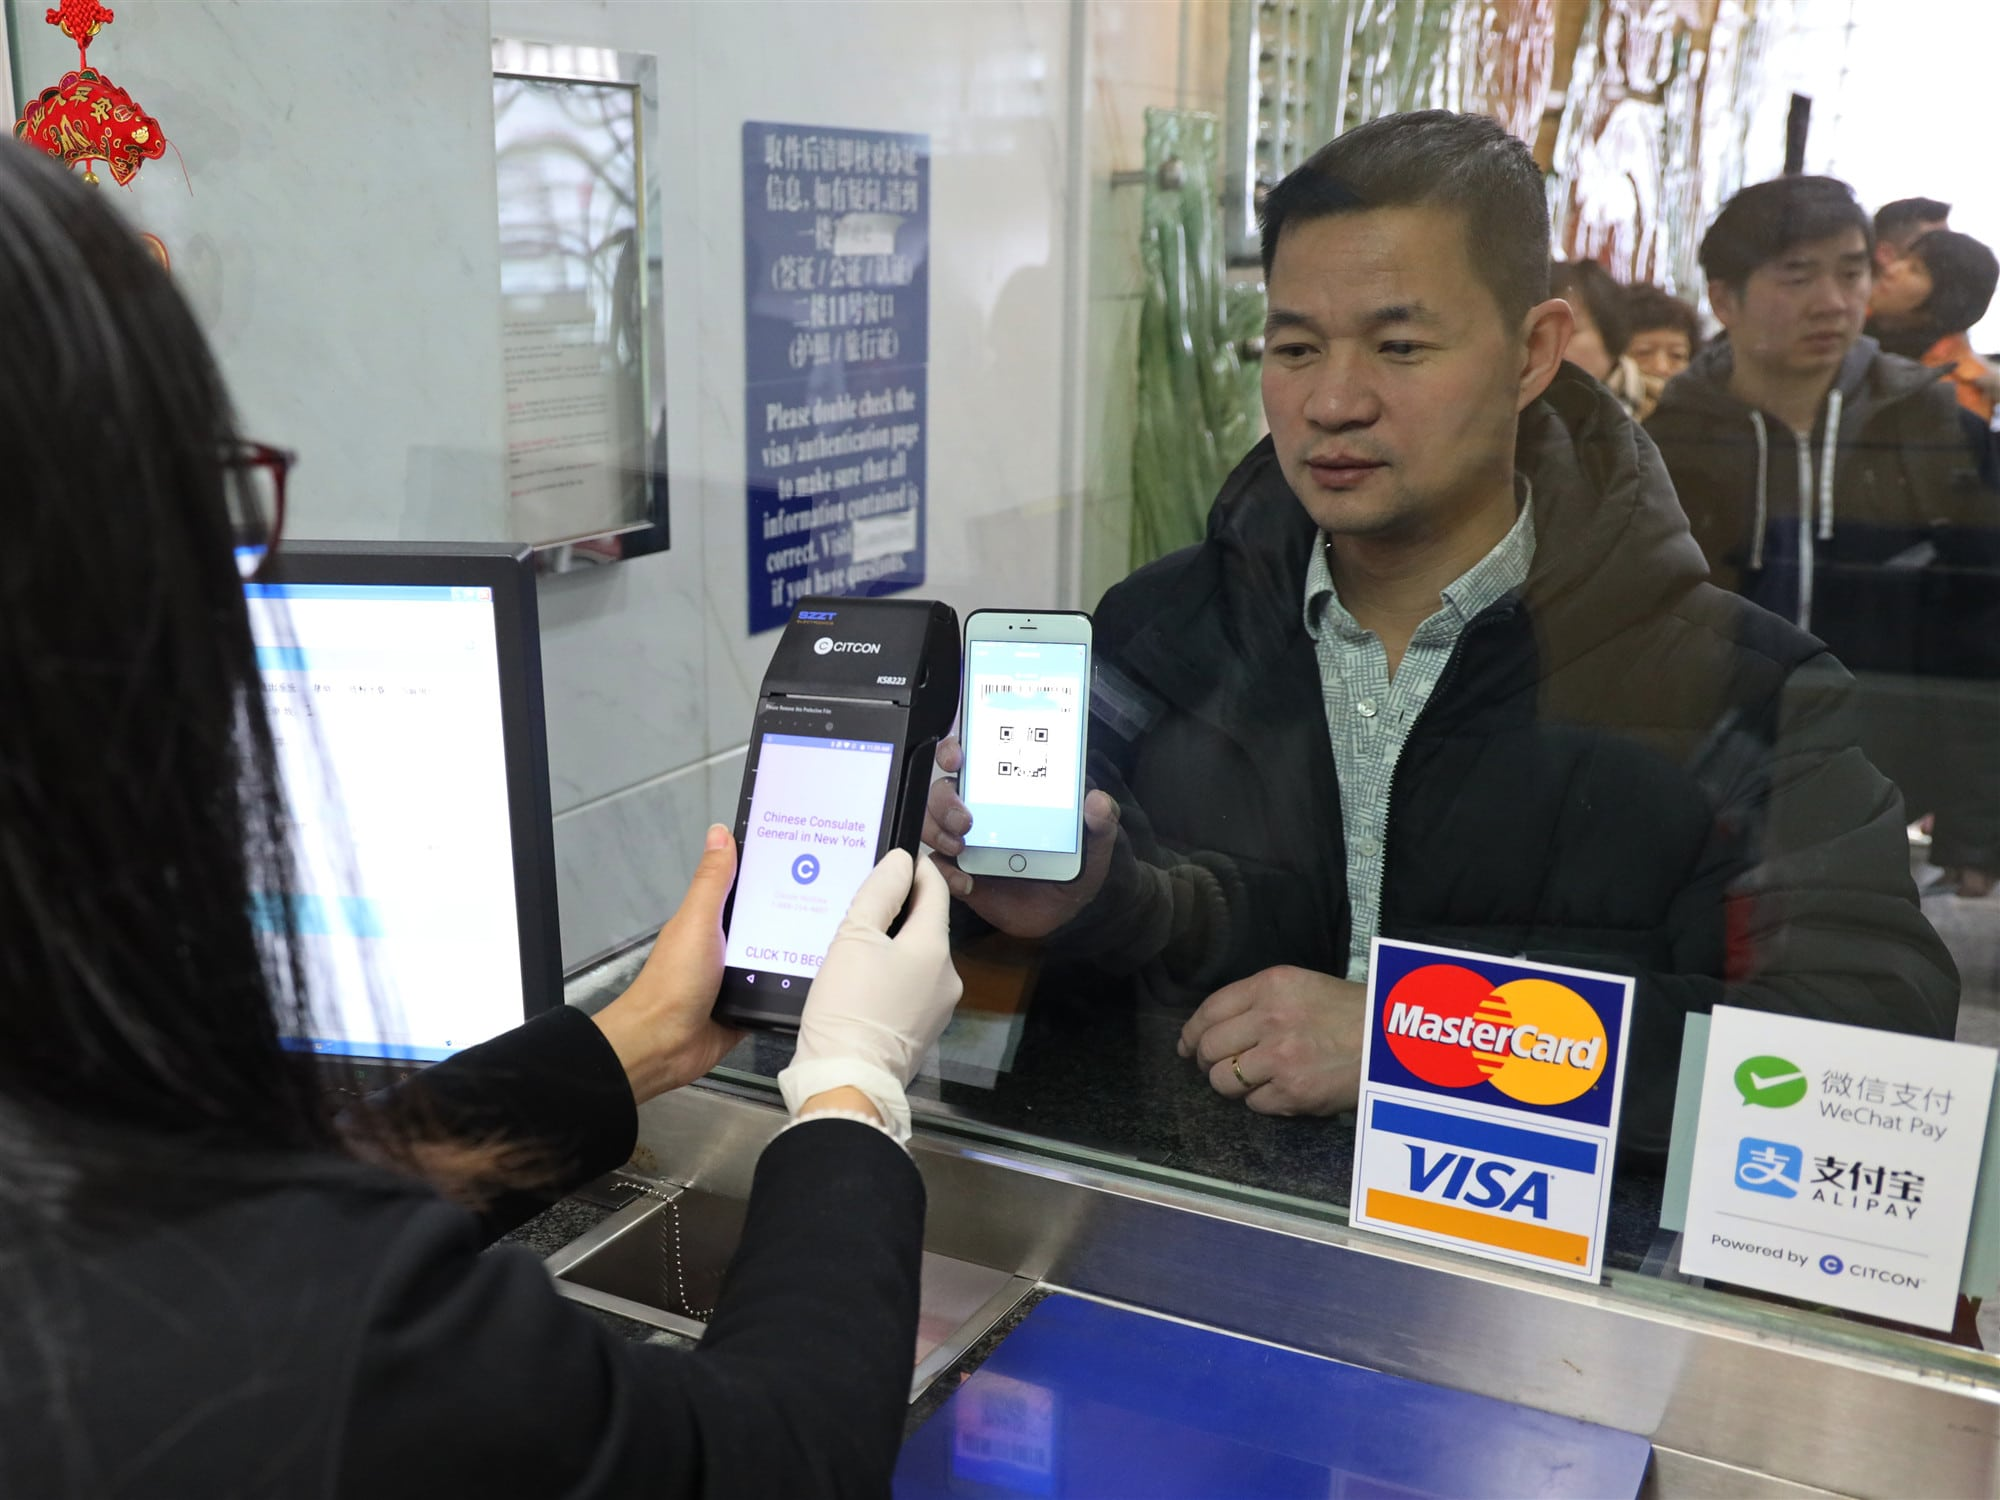 Mobile payment introduced in Chinese consular services for U.S. East Coast